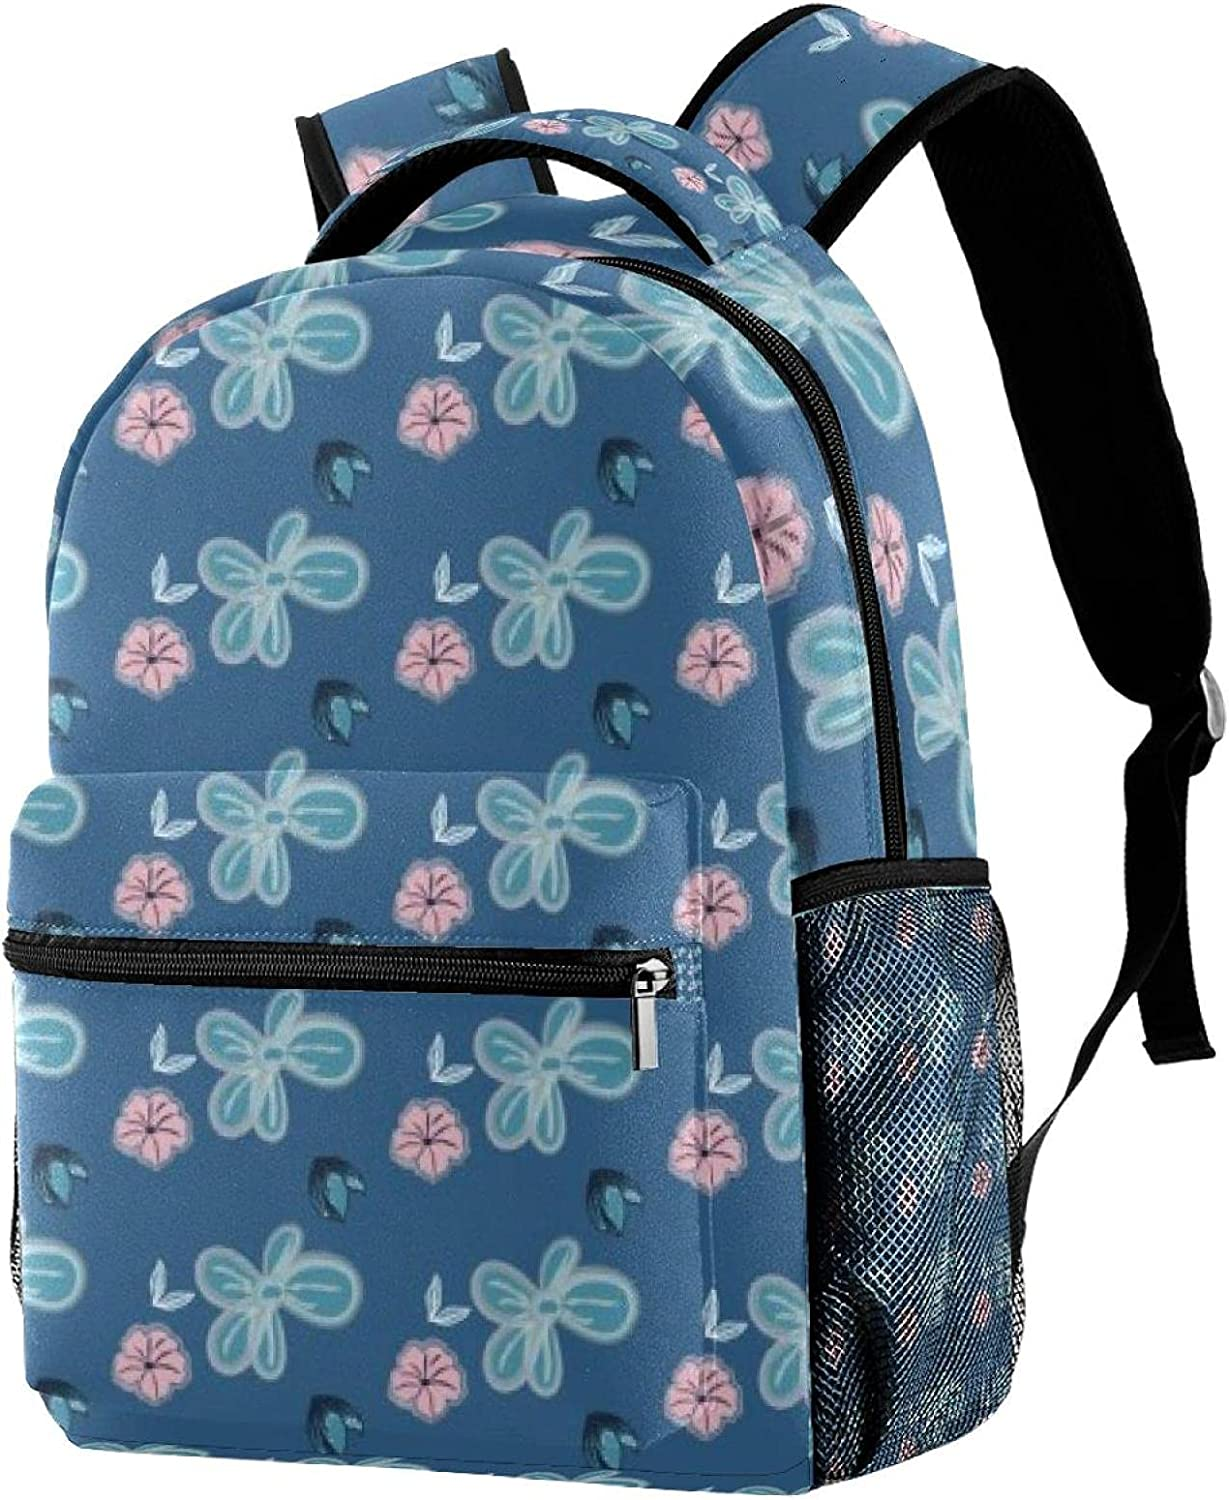 Beautiful Flowers Backpack for Student Ranking integrated 1st place Sc Lightweight Japan Maker New BoysGirls